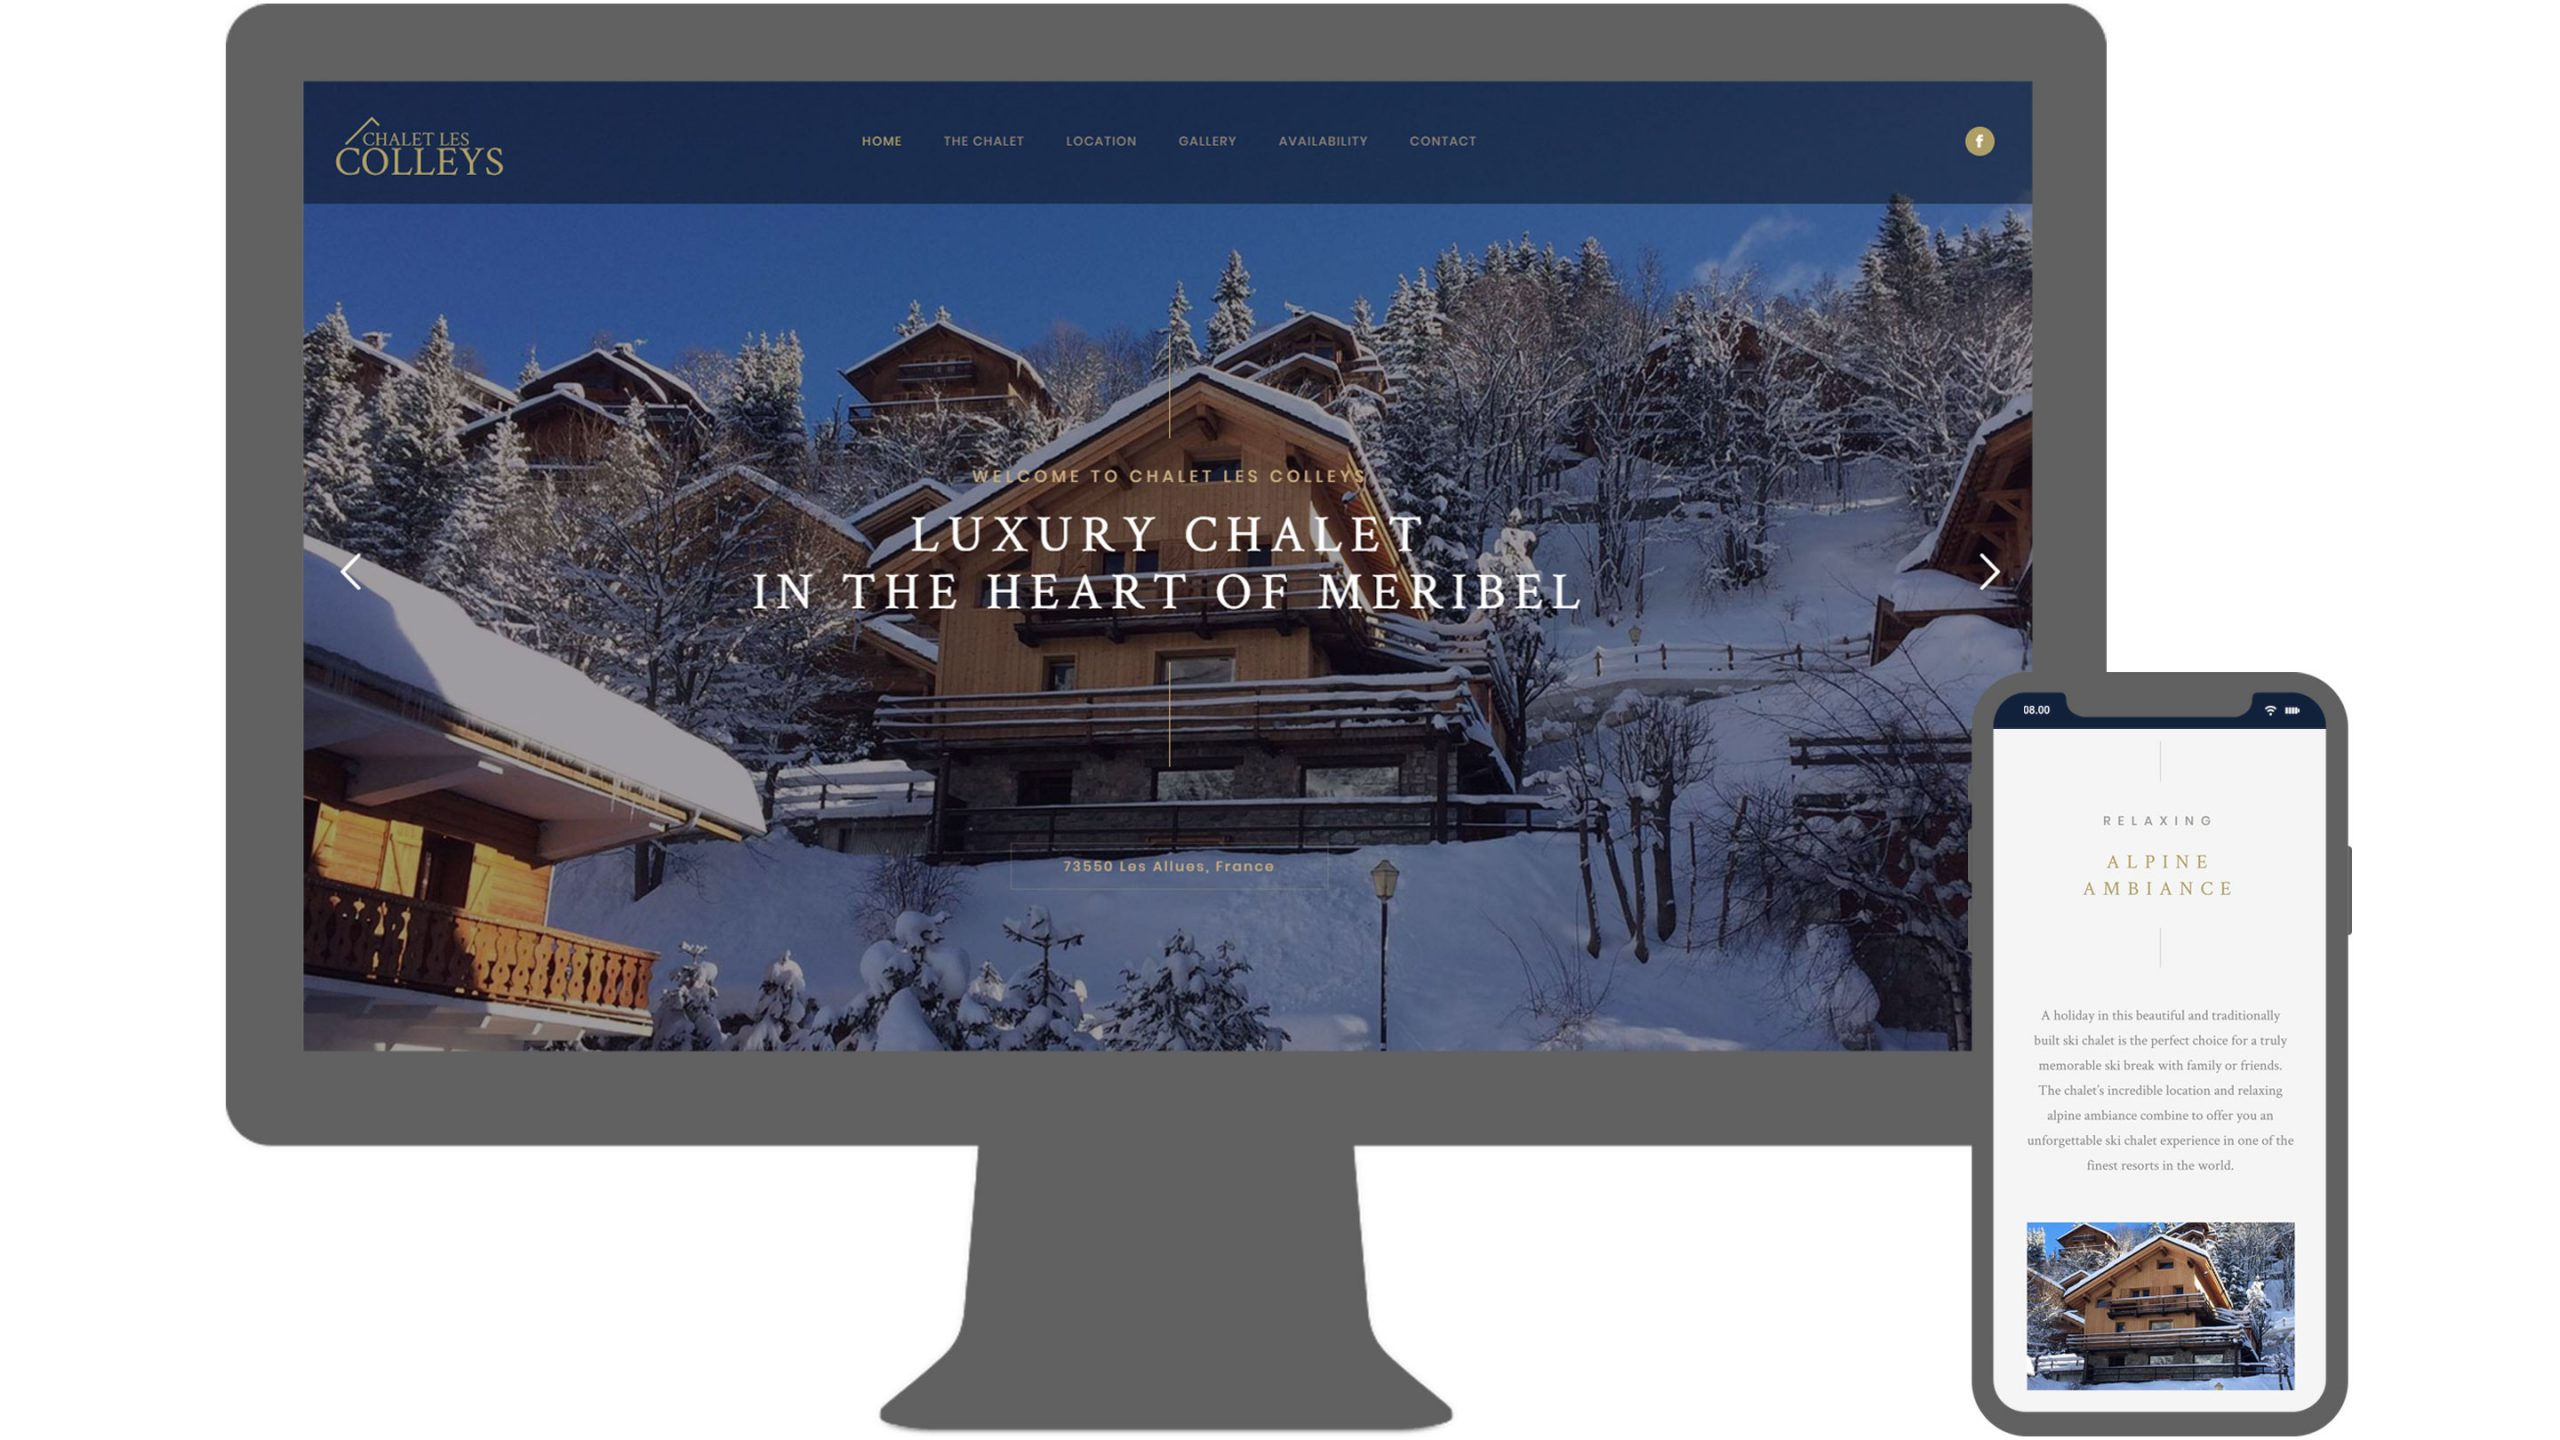 chalet in meribel website desktop and mobile